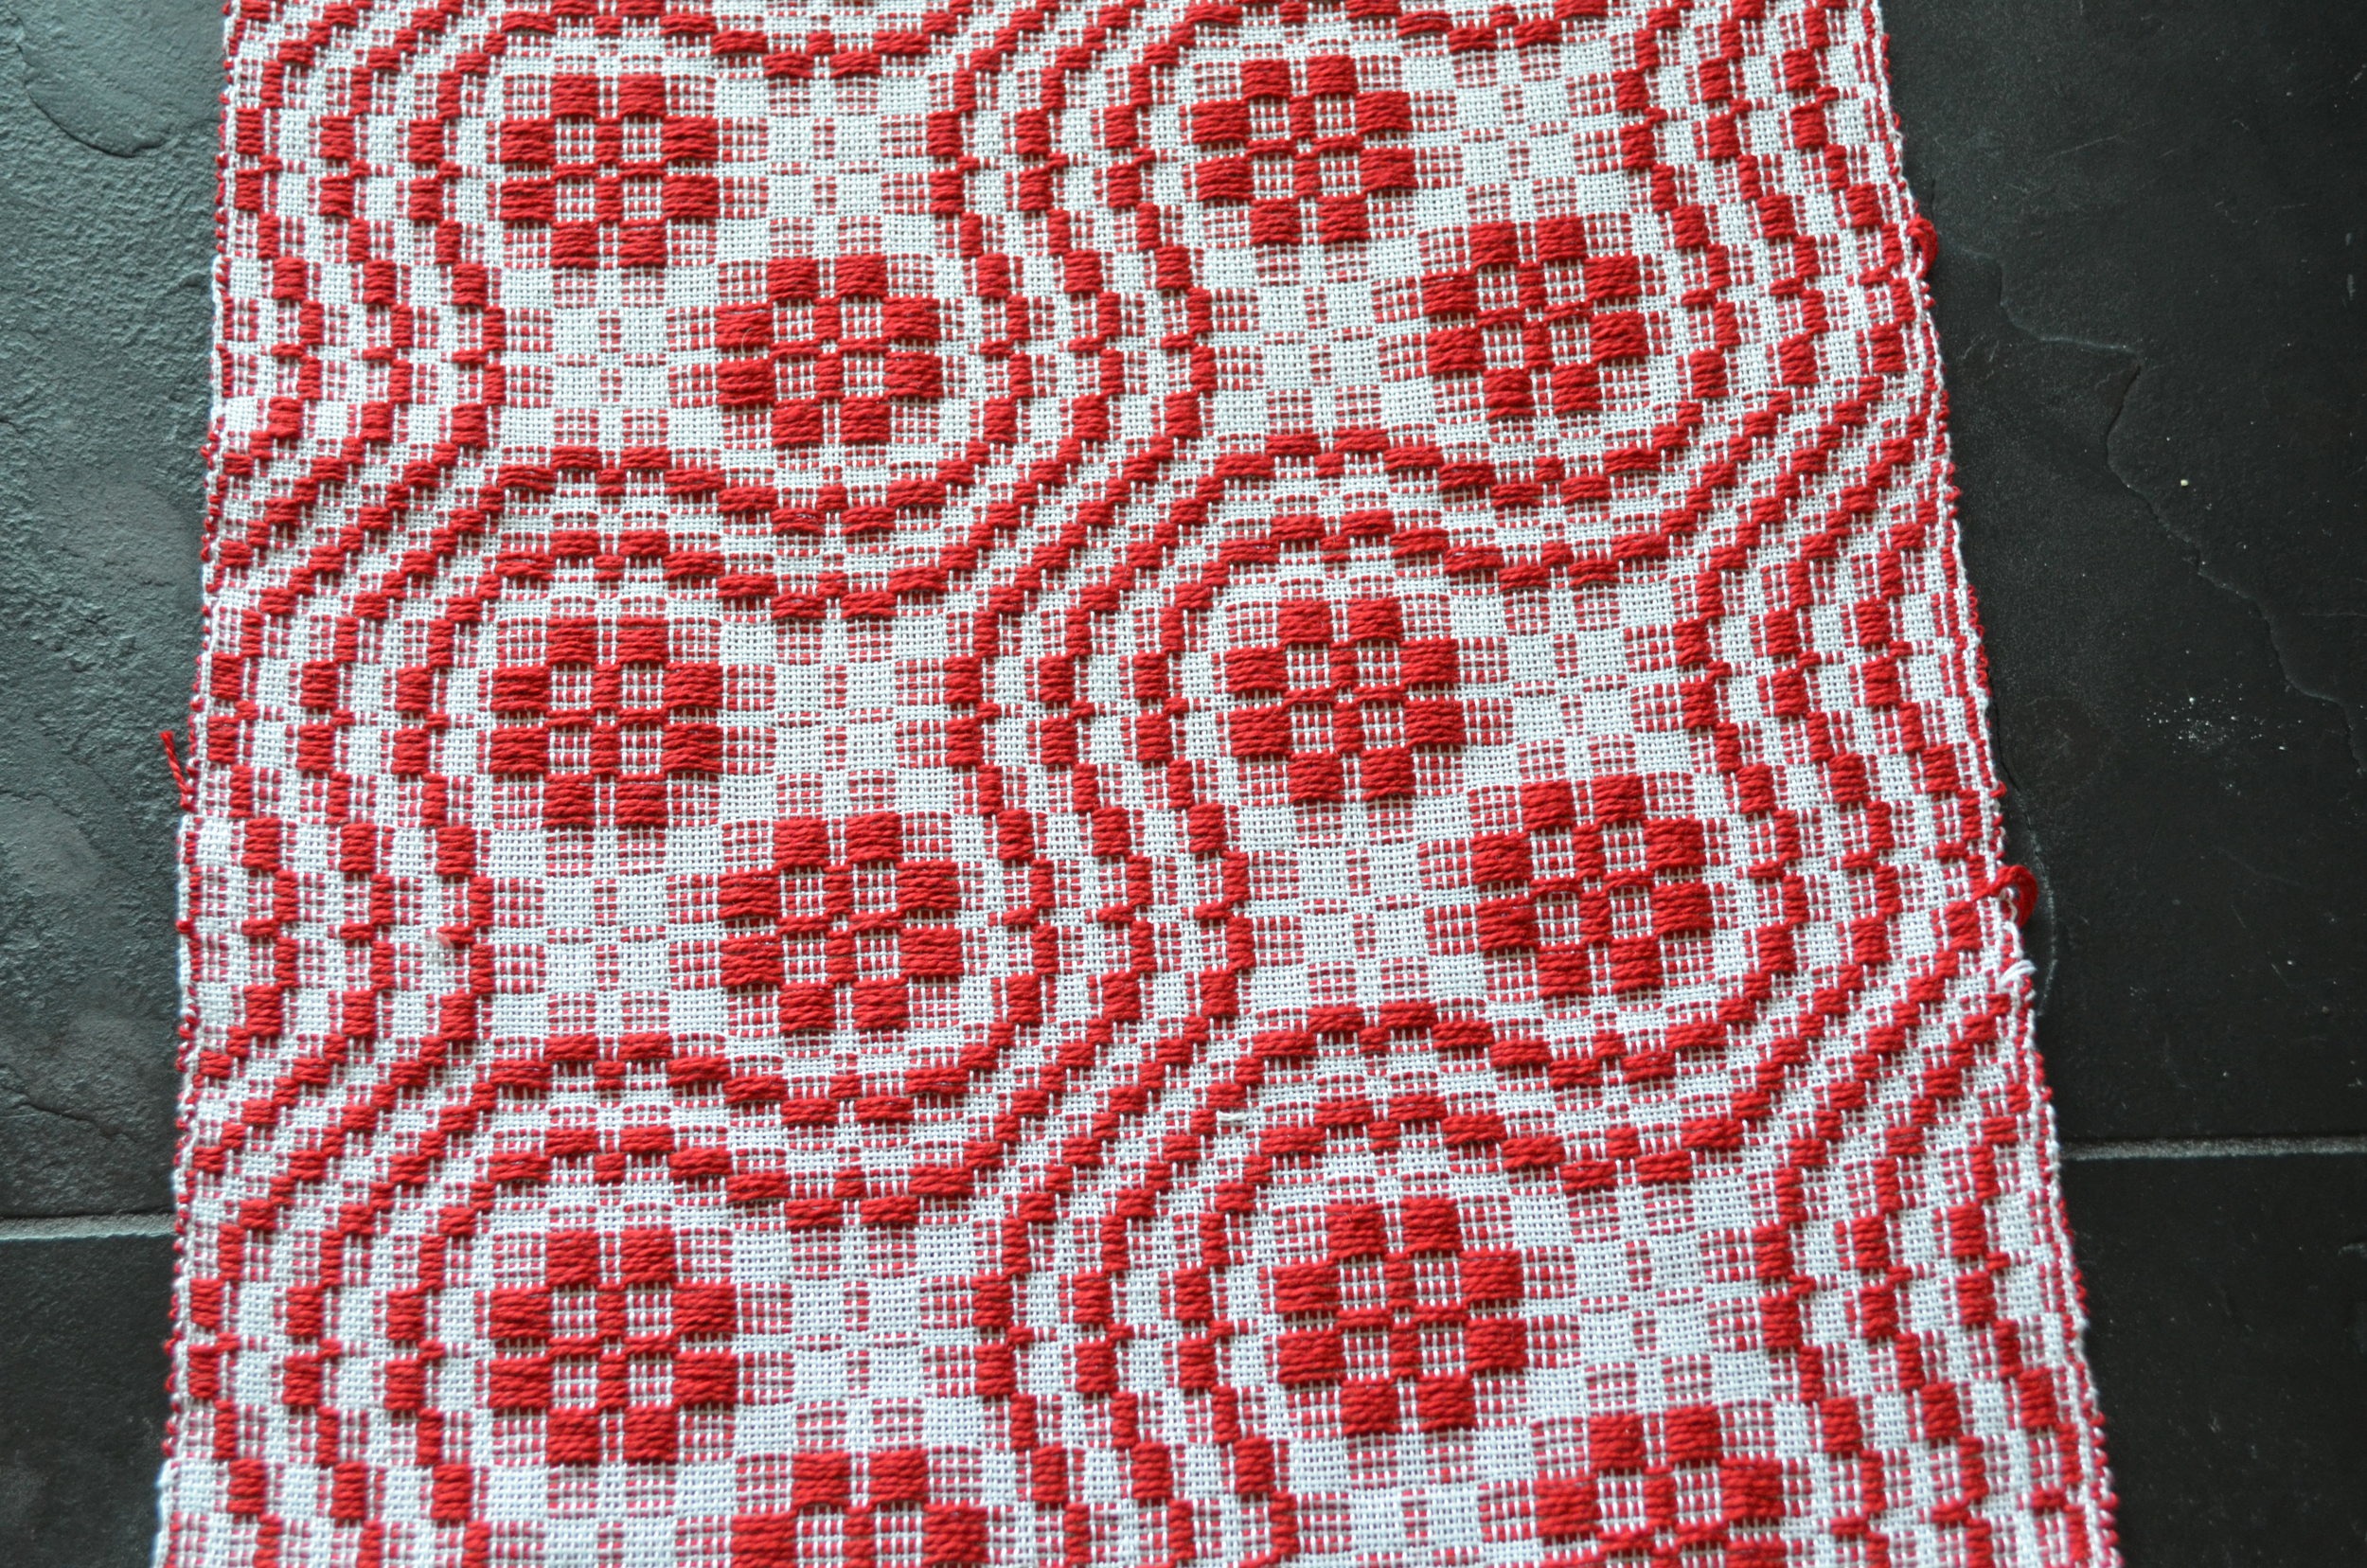 snails trail and cats paw overshot woven table runner / warporweft.com